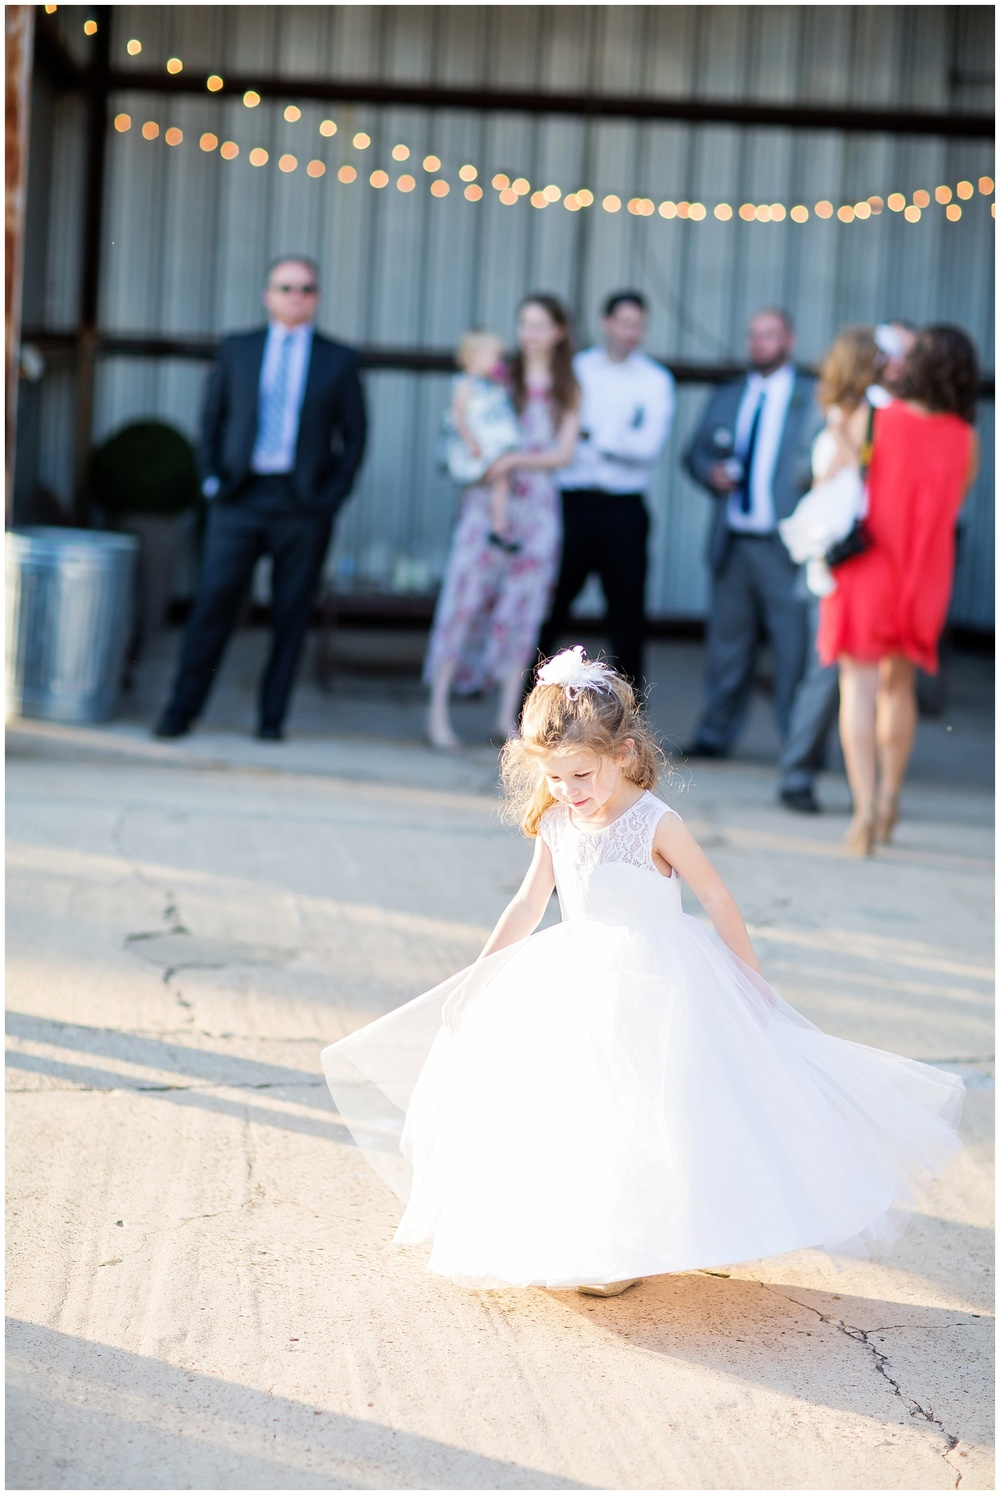 Kinler_DixieGin_Shreveport_Wedding_62.jpg